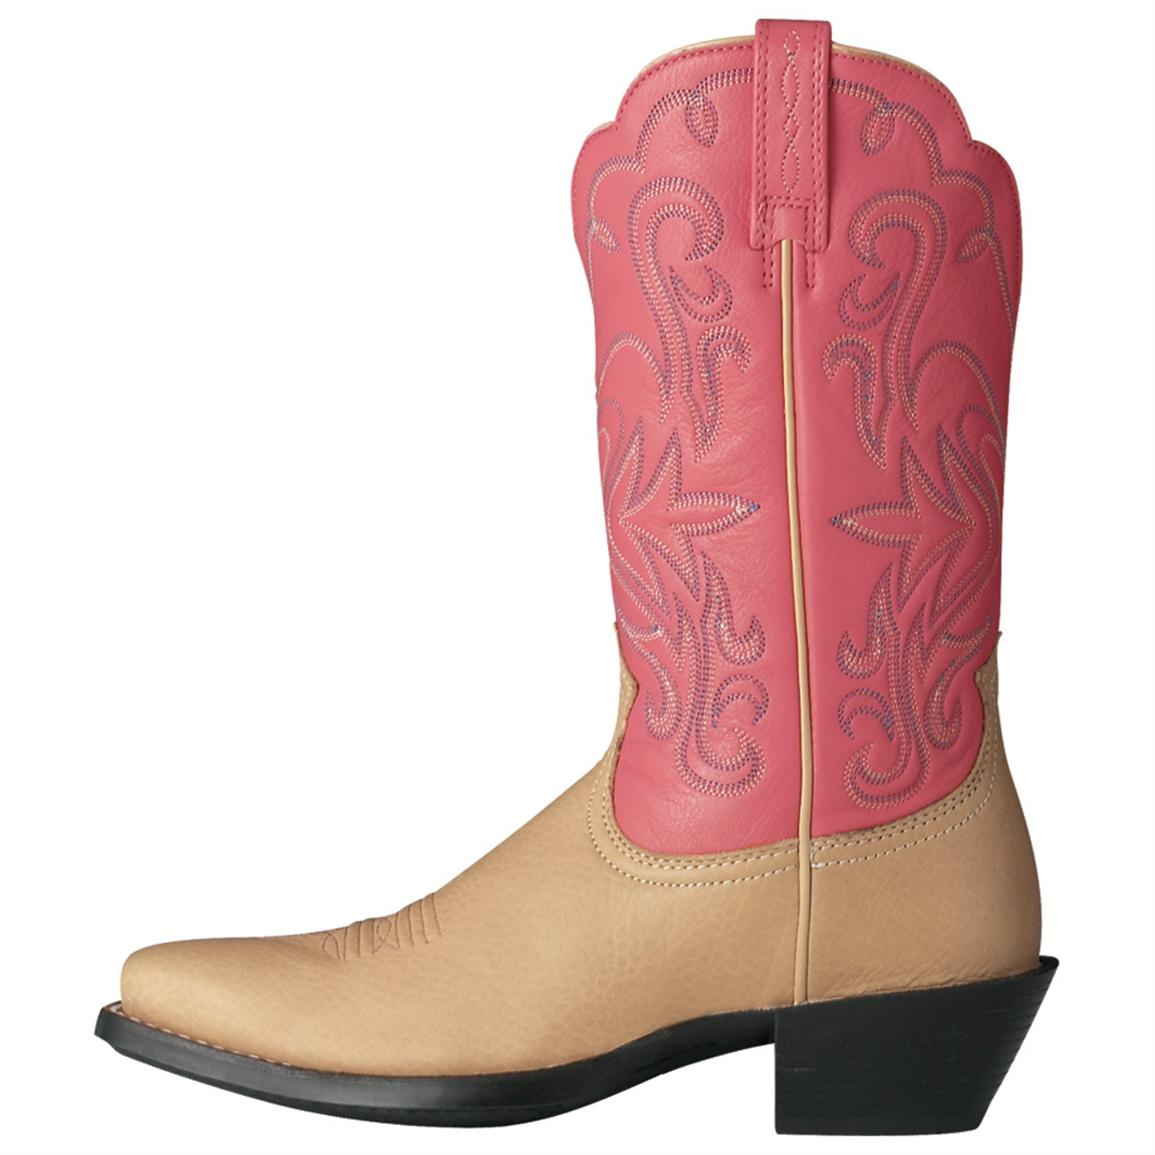 Wonderful Ariat Legend 11 Cowboy Boots  Leather Square Toe For Women In